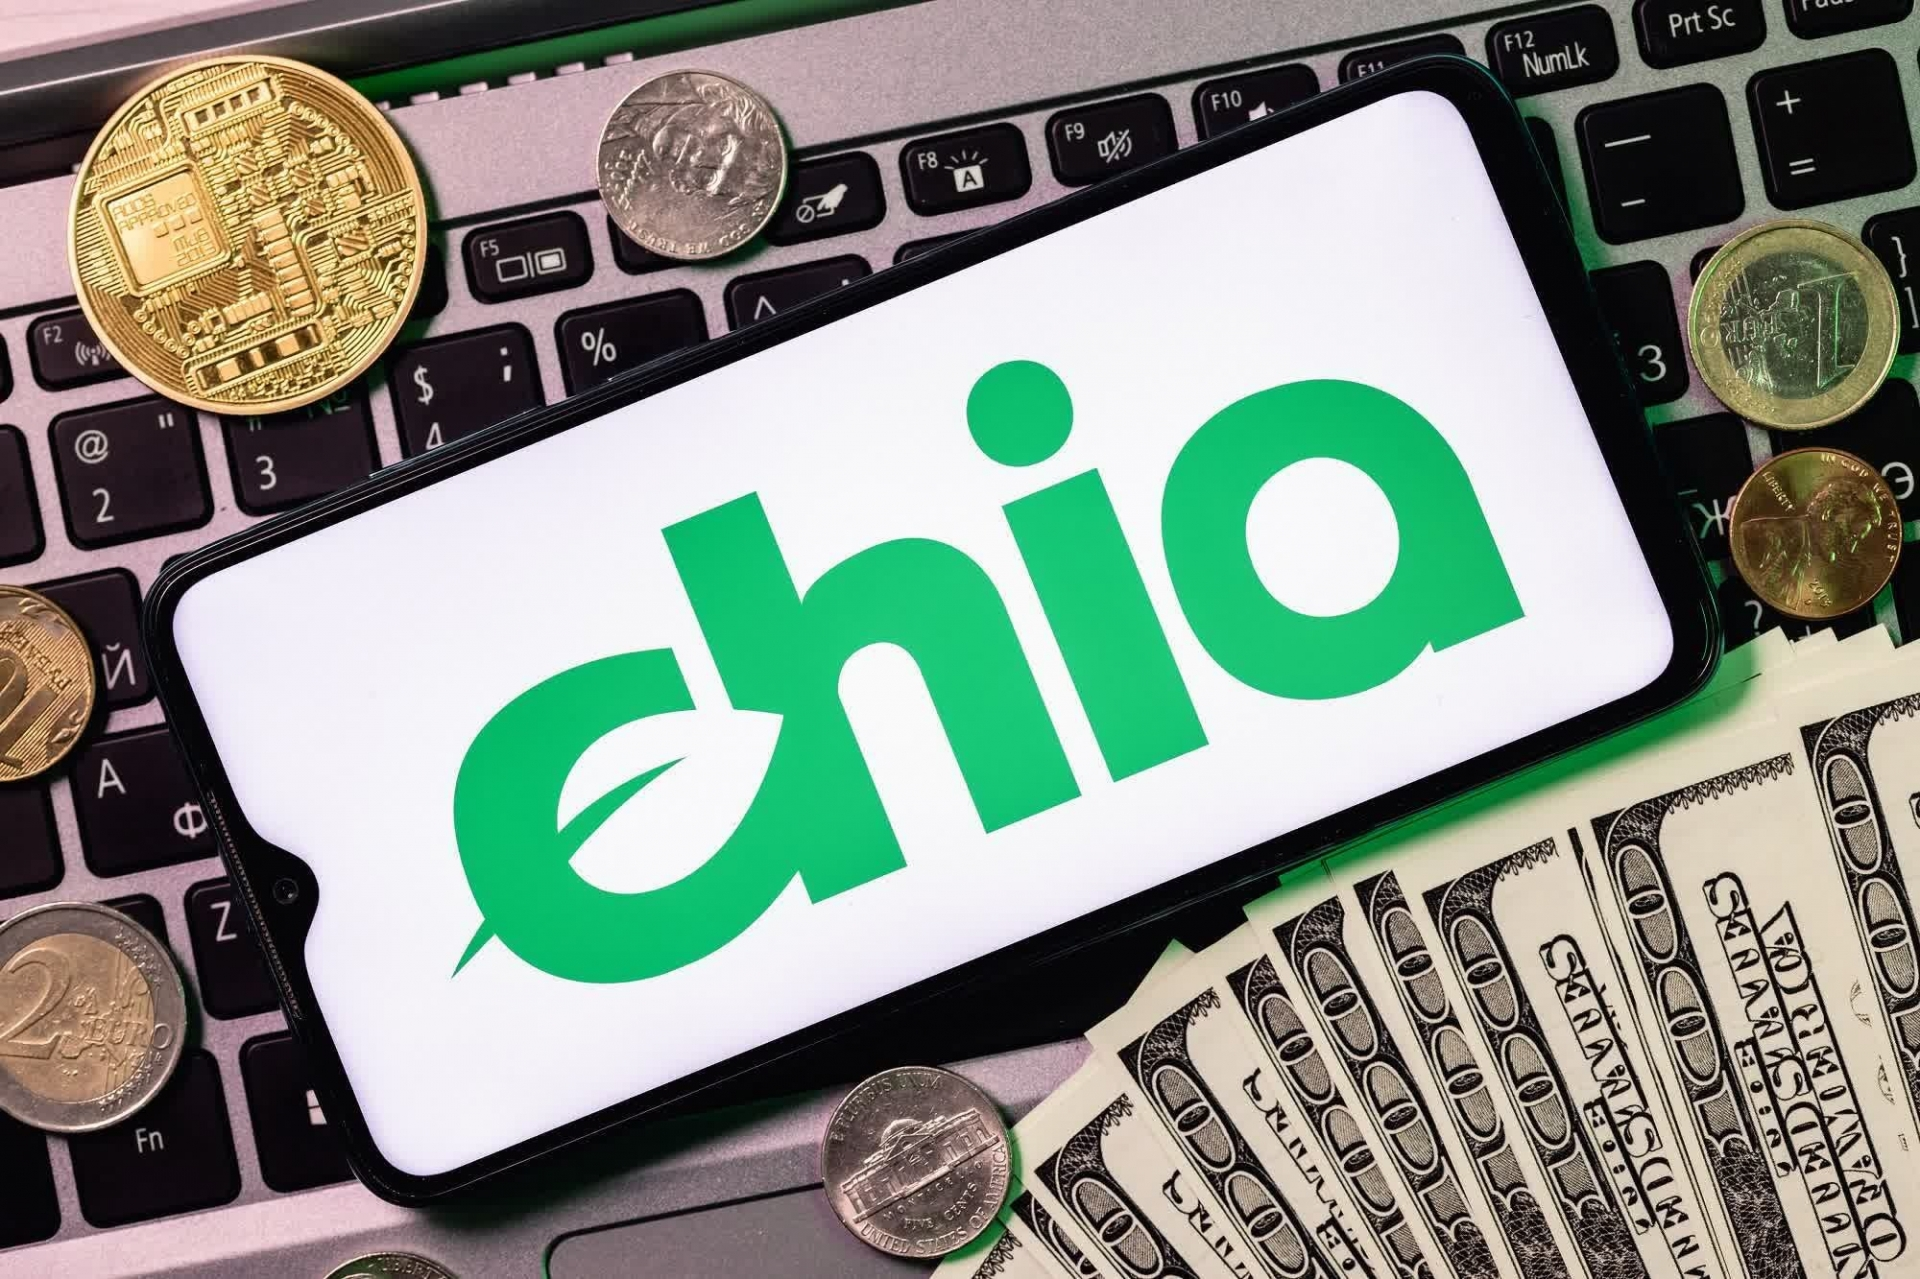 Spending 3 billion to dig 'Green Bitcoin', the owner of Chia mining mine earned 56 million dong after 2 months of March